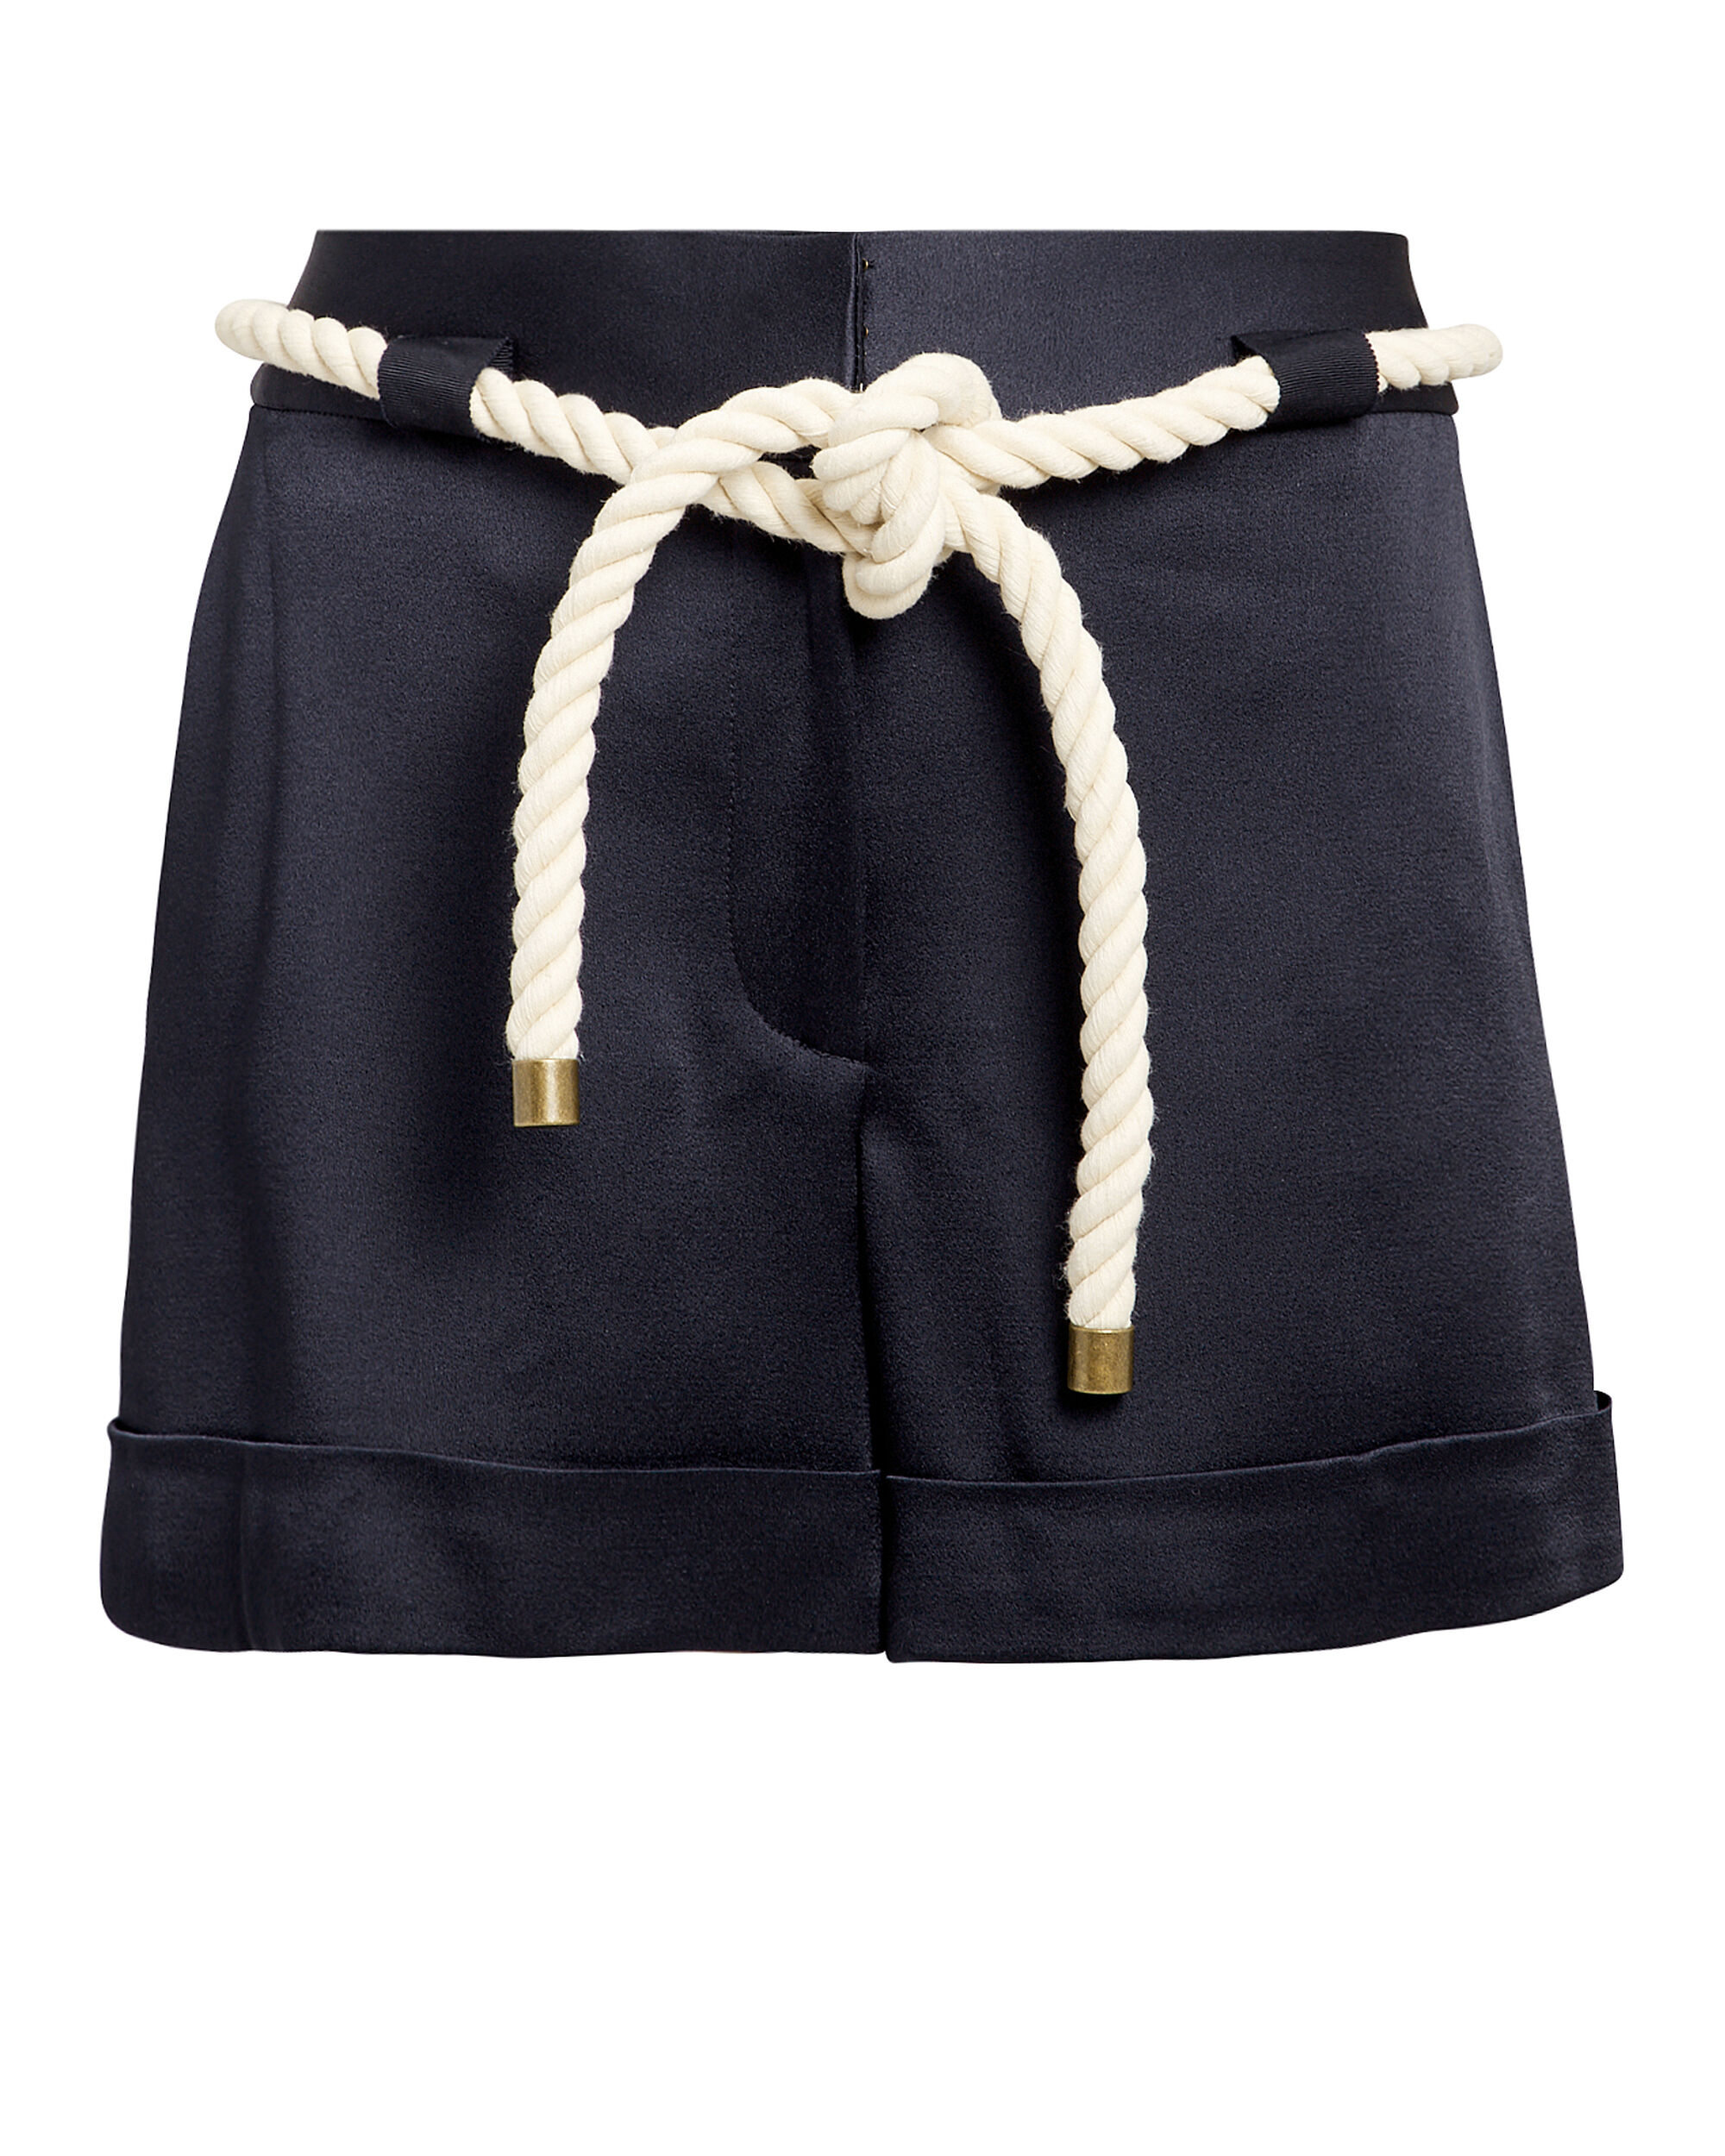 Rope Tie Navy Shorts, NAVY, hi-res